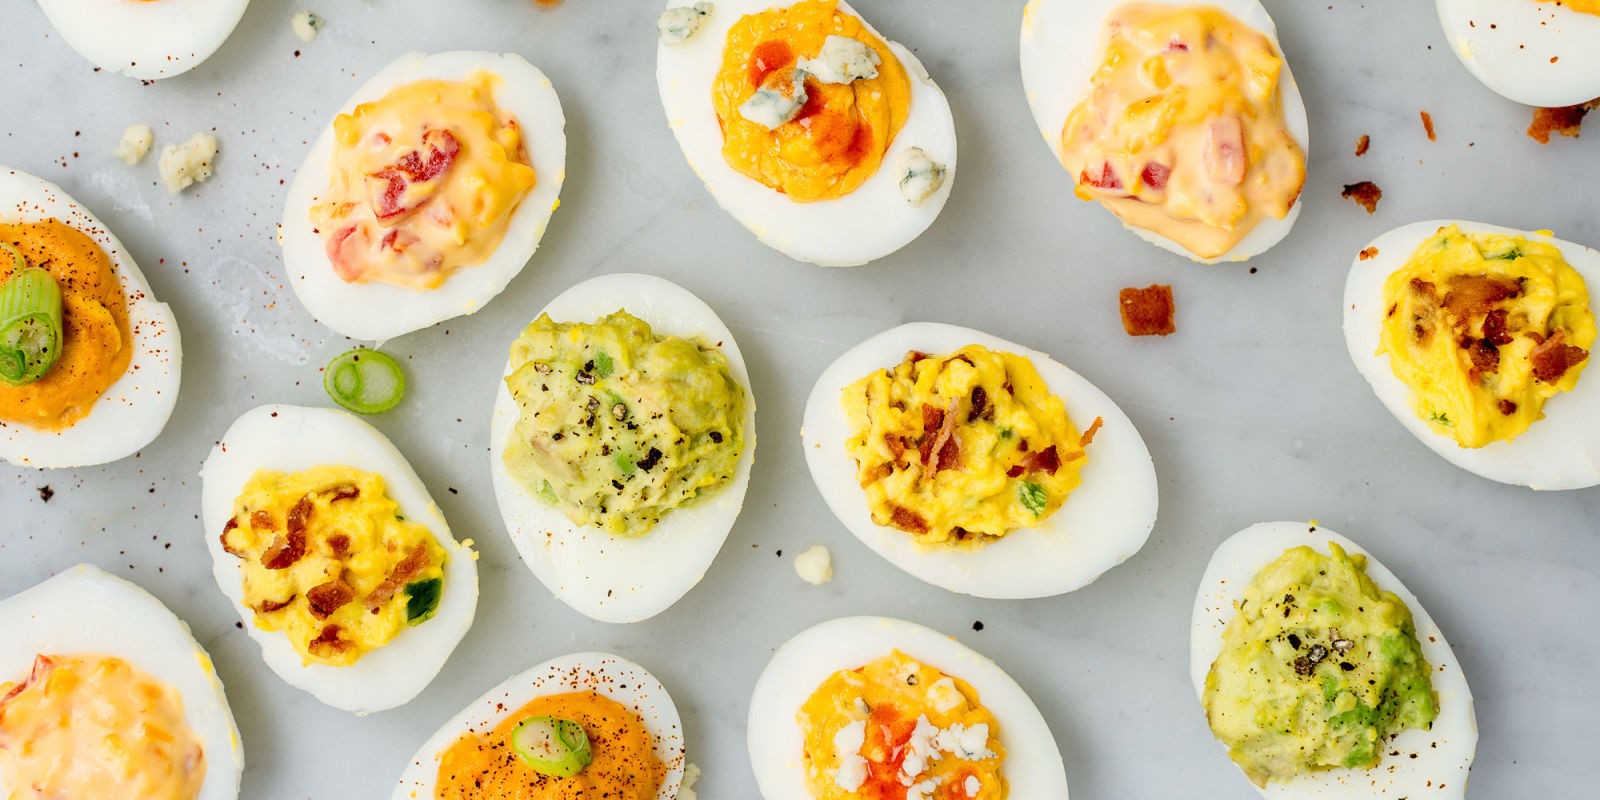 Easy Deviled Eggs Recipes - How to Make Deviled Eggs ...